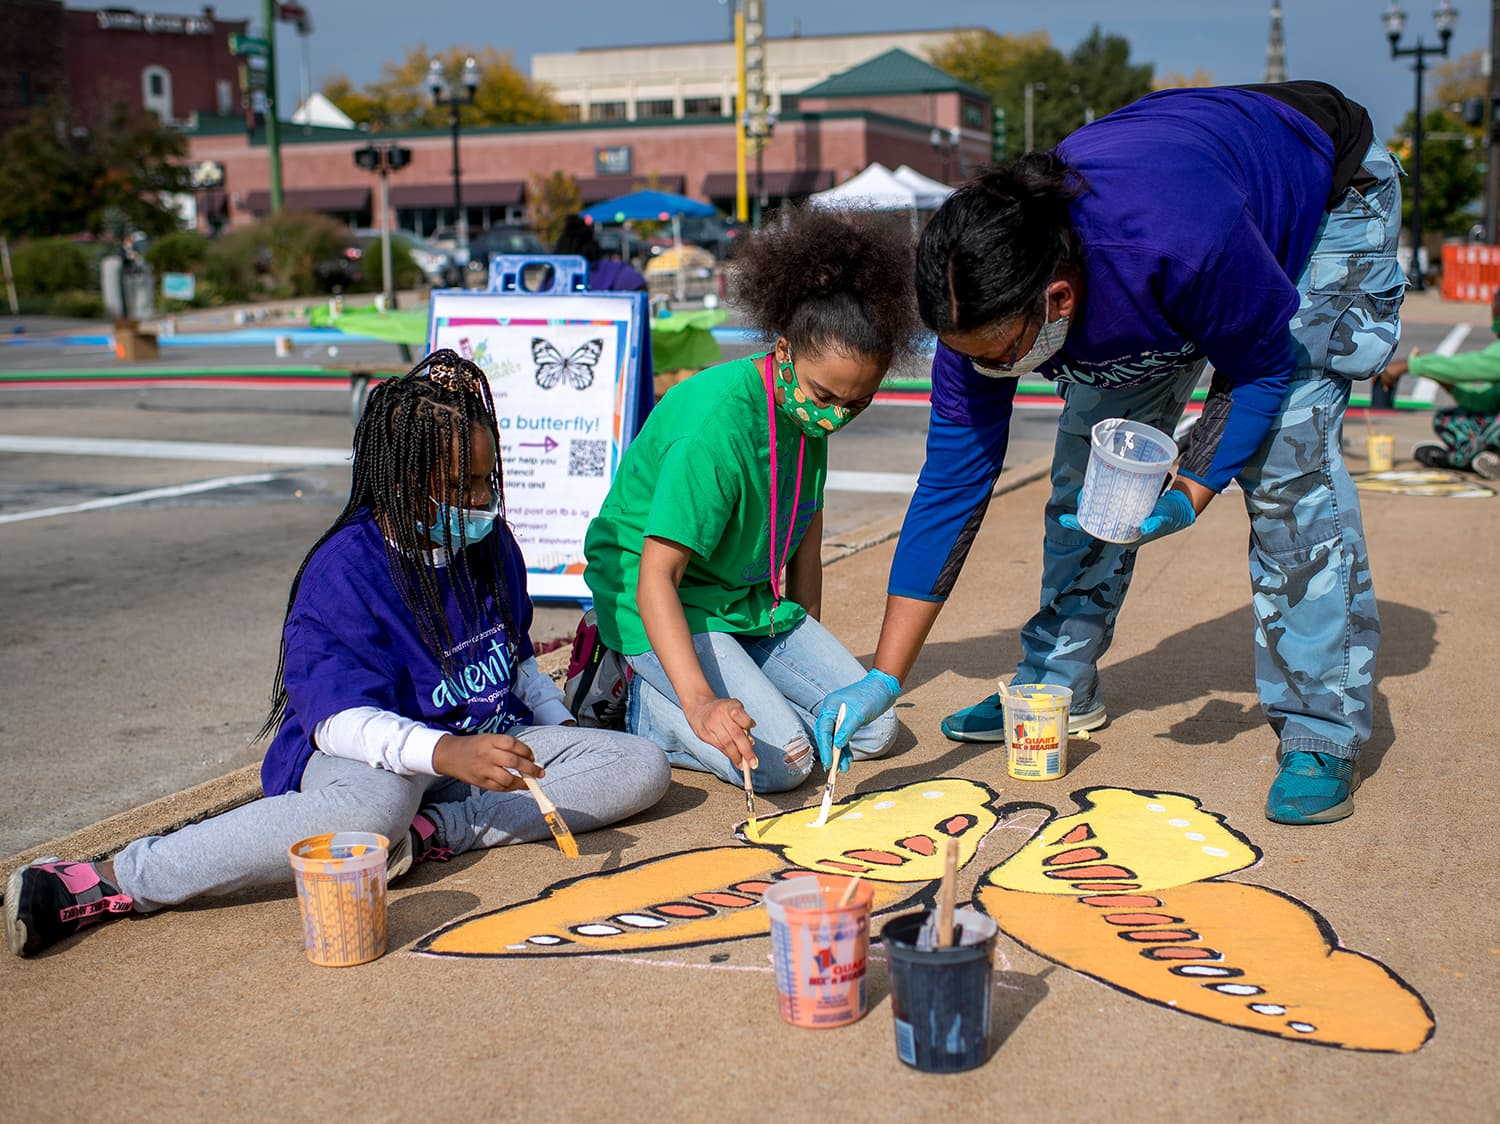 The City of Saginaw, Michigan utilized art to tie three downtown intersection together to support local and business, while also celebrating the city's diversity.